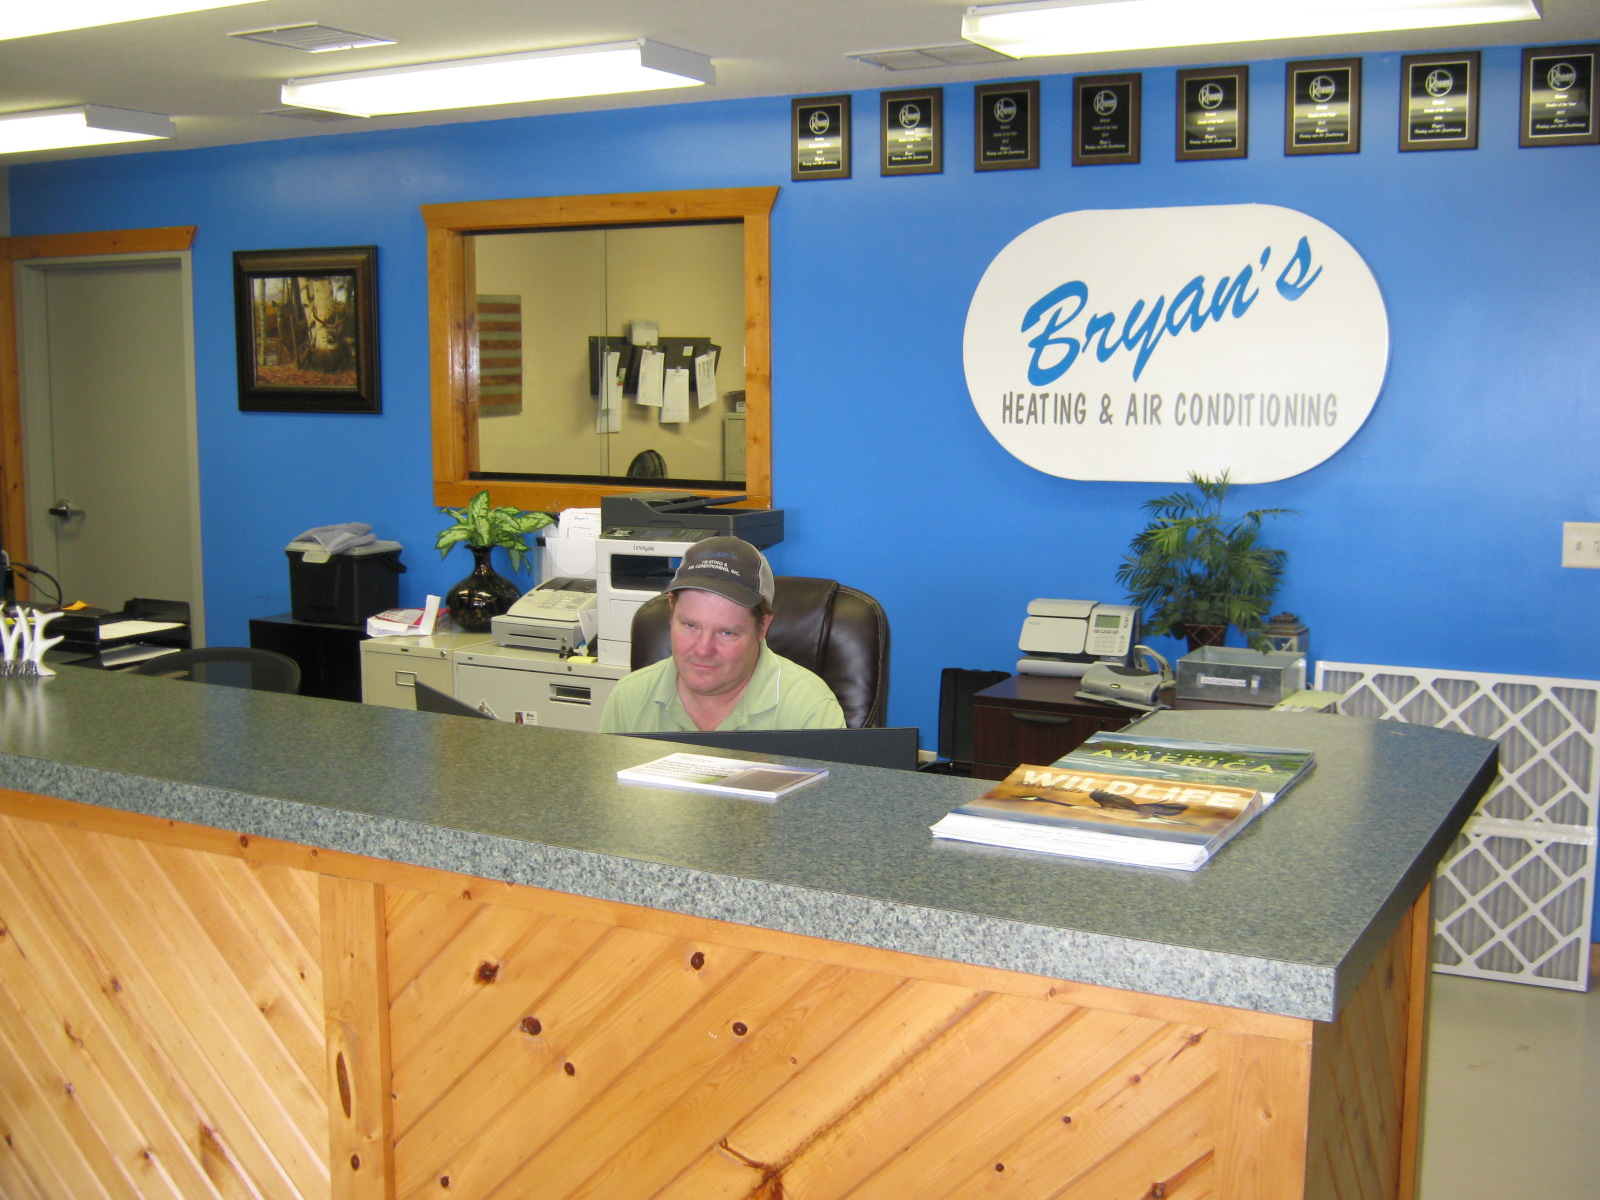 Bryan's Heating & Air Conditioning, Inc. image 7